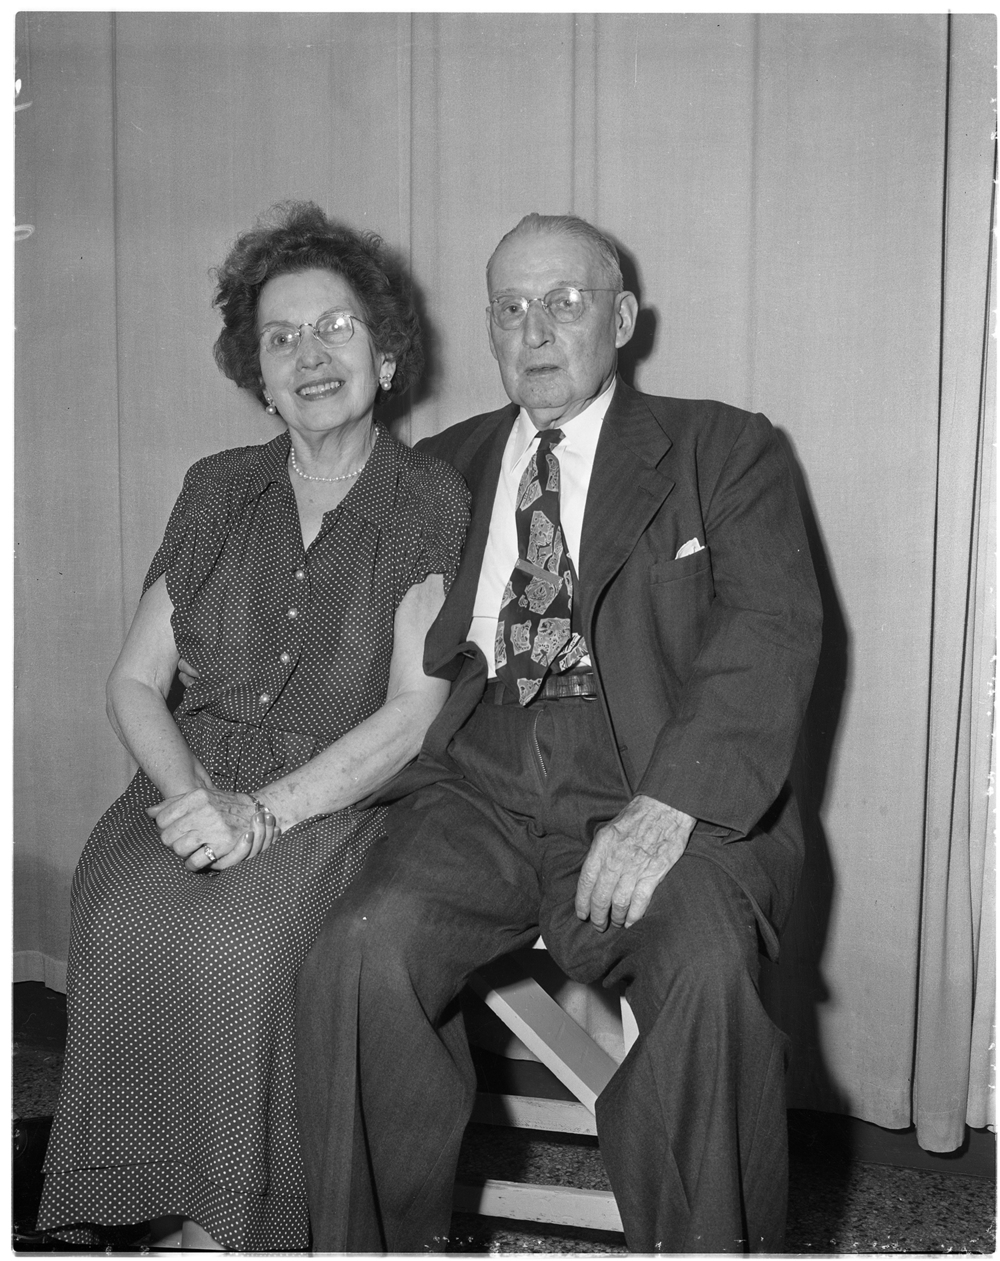 James and Margaret Moore of Chicago, formerly of Springfield, celebrated their 50th anniversary in June  1954 with a Mass of Thanksgiving at St. Joseph's Church where they were married in 1904. A breakfast for immediate family at the Southern Air, followed by a reception for friends and relatives was also held. Margaret Moore taught at the Sherman and Iles Junction schools before her marriage.  Mr. Moore was a retired grocer.